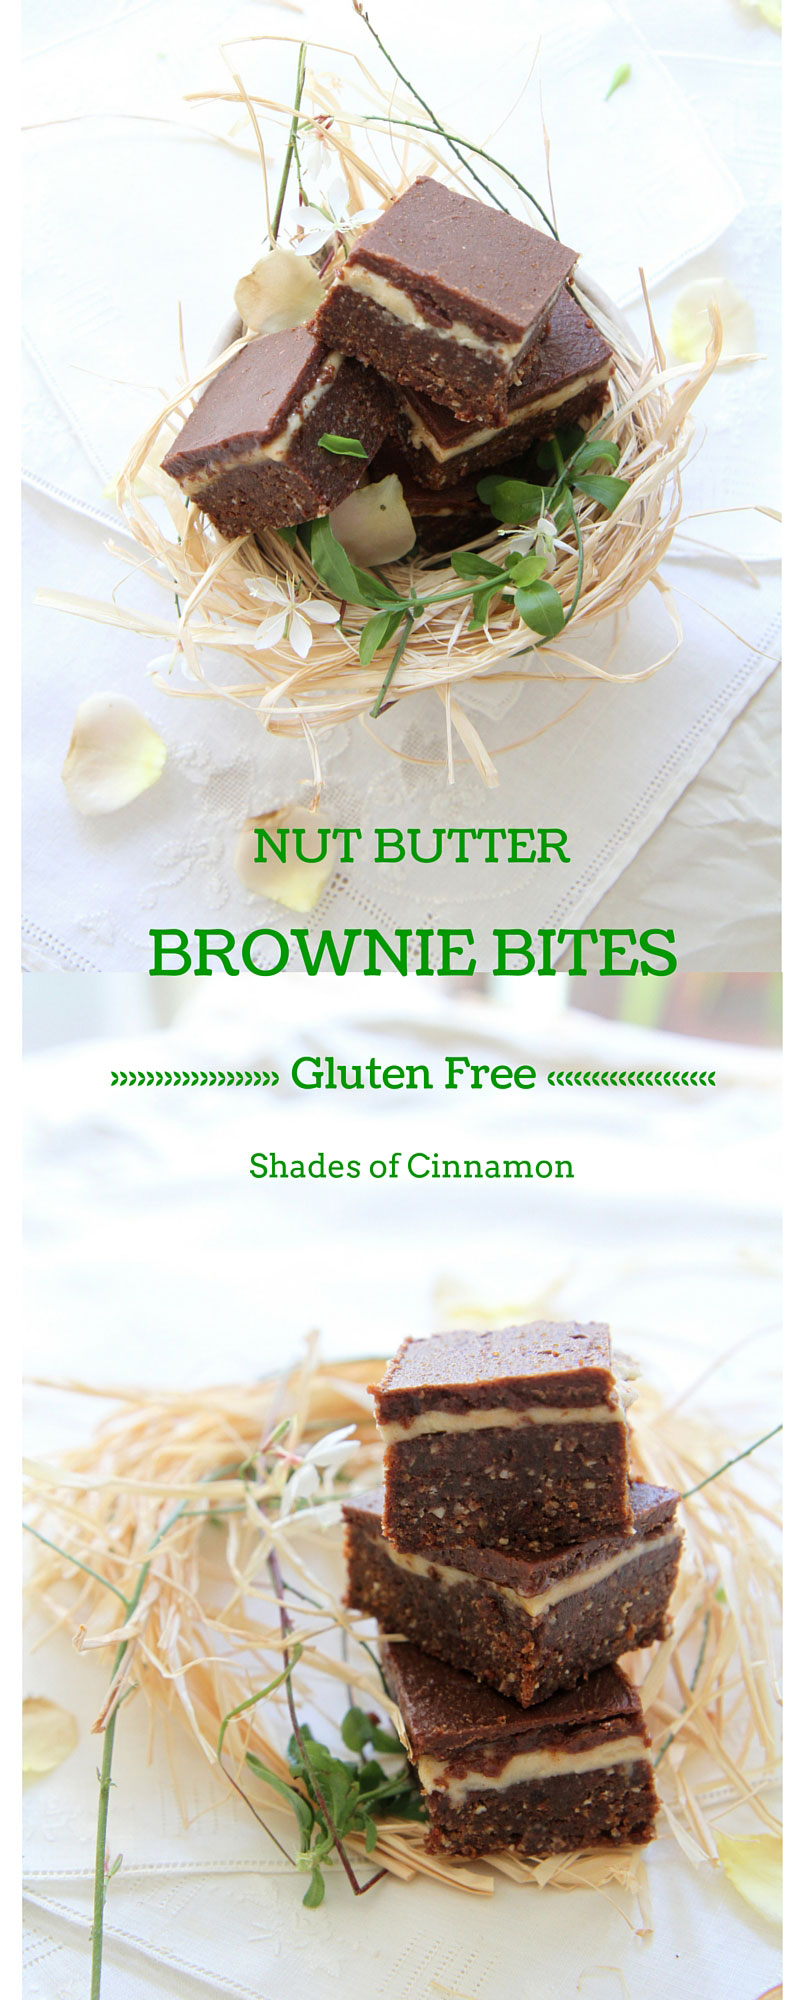 Gluten free and vegan nut butter brownies